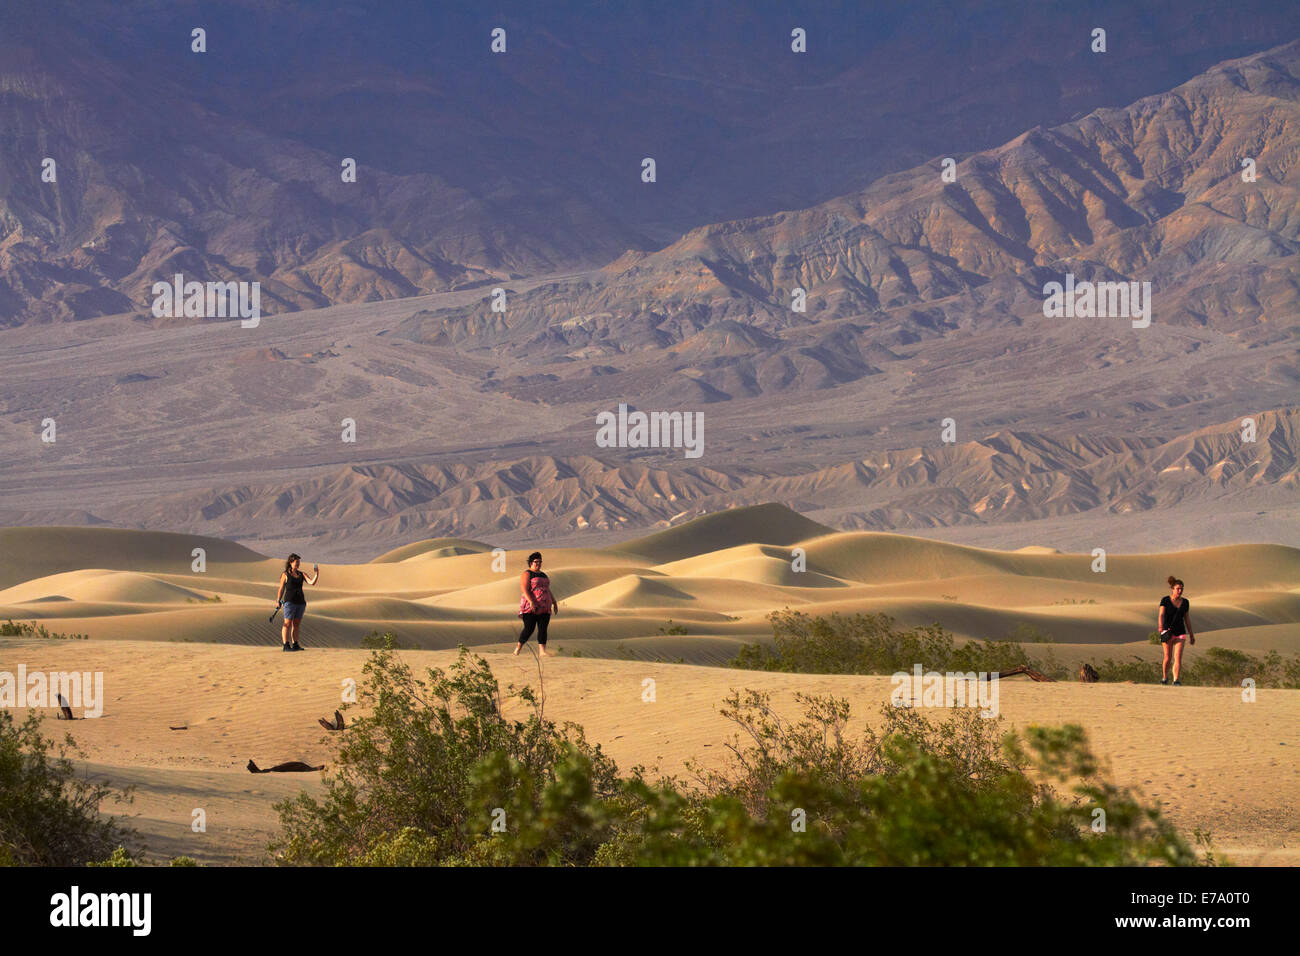 Tourists on Mesquite Flat Sand Dunes, and Grapevine Mountains, near Stovepipe Wells, Death Valley National Park, Mojave Desert Stock Photo